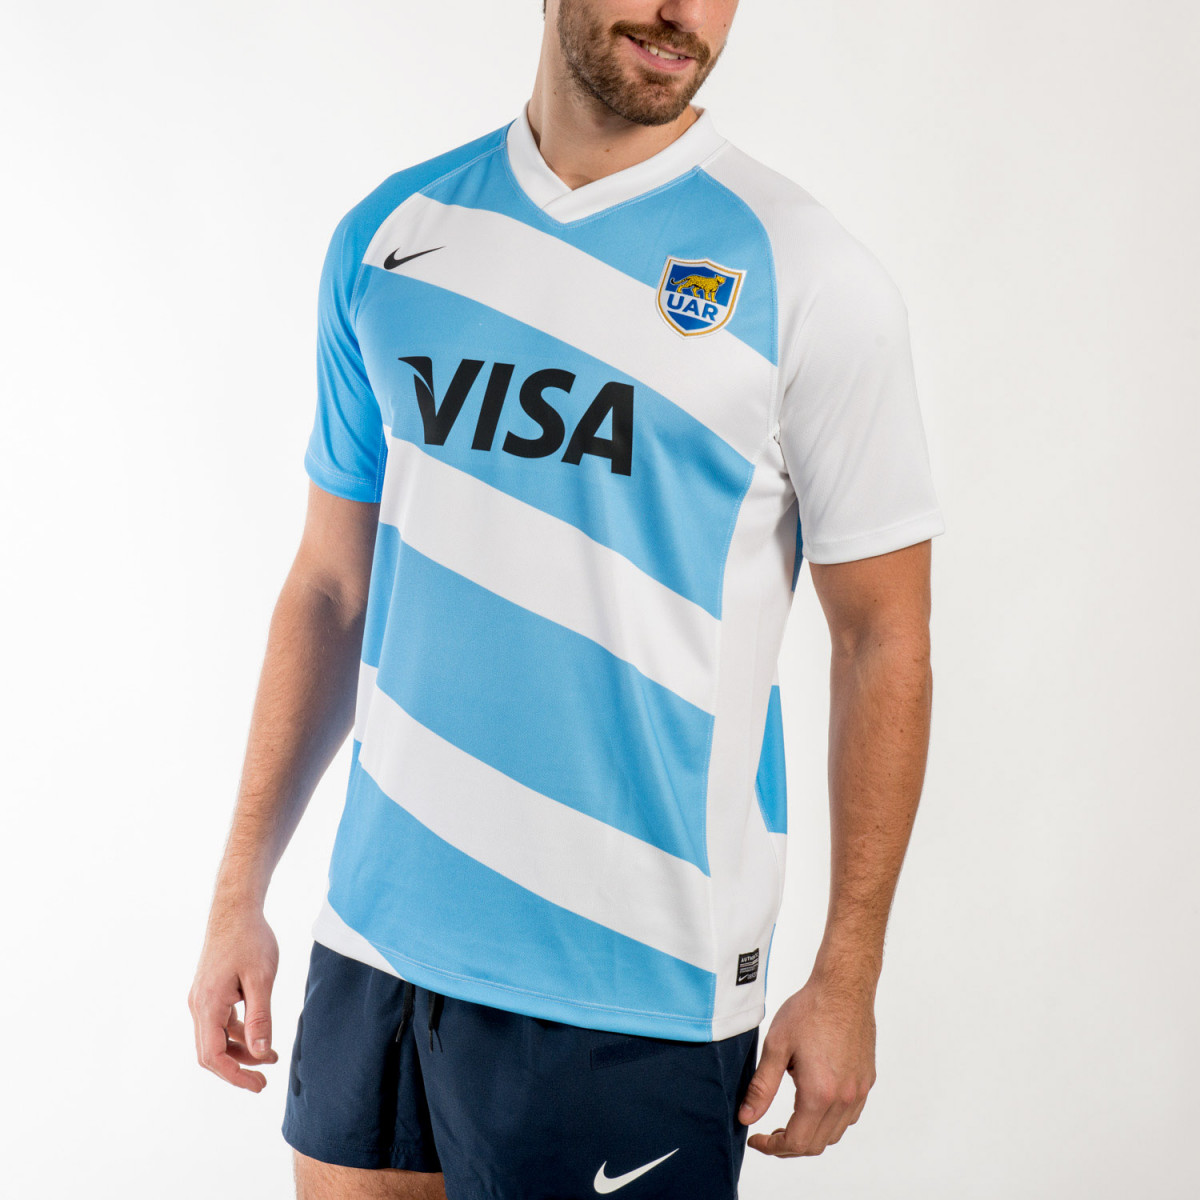 CAMISETA NIKE UAR HOME REPLICA